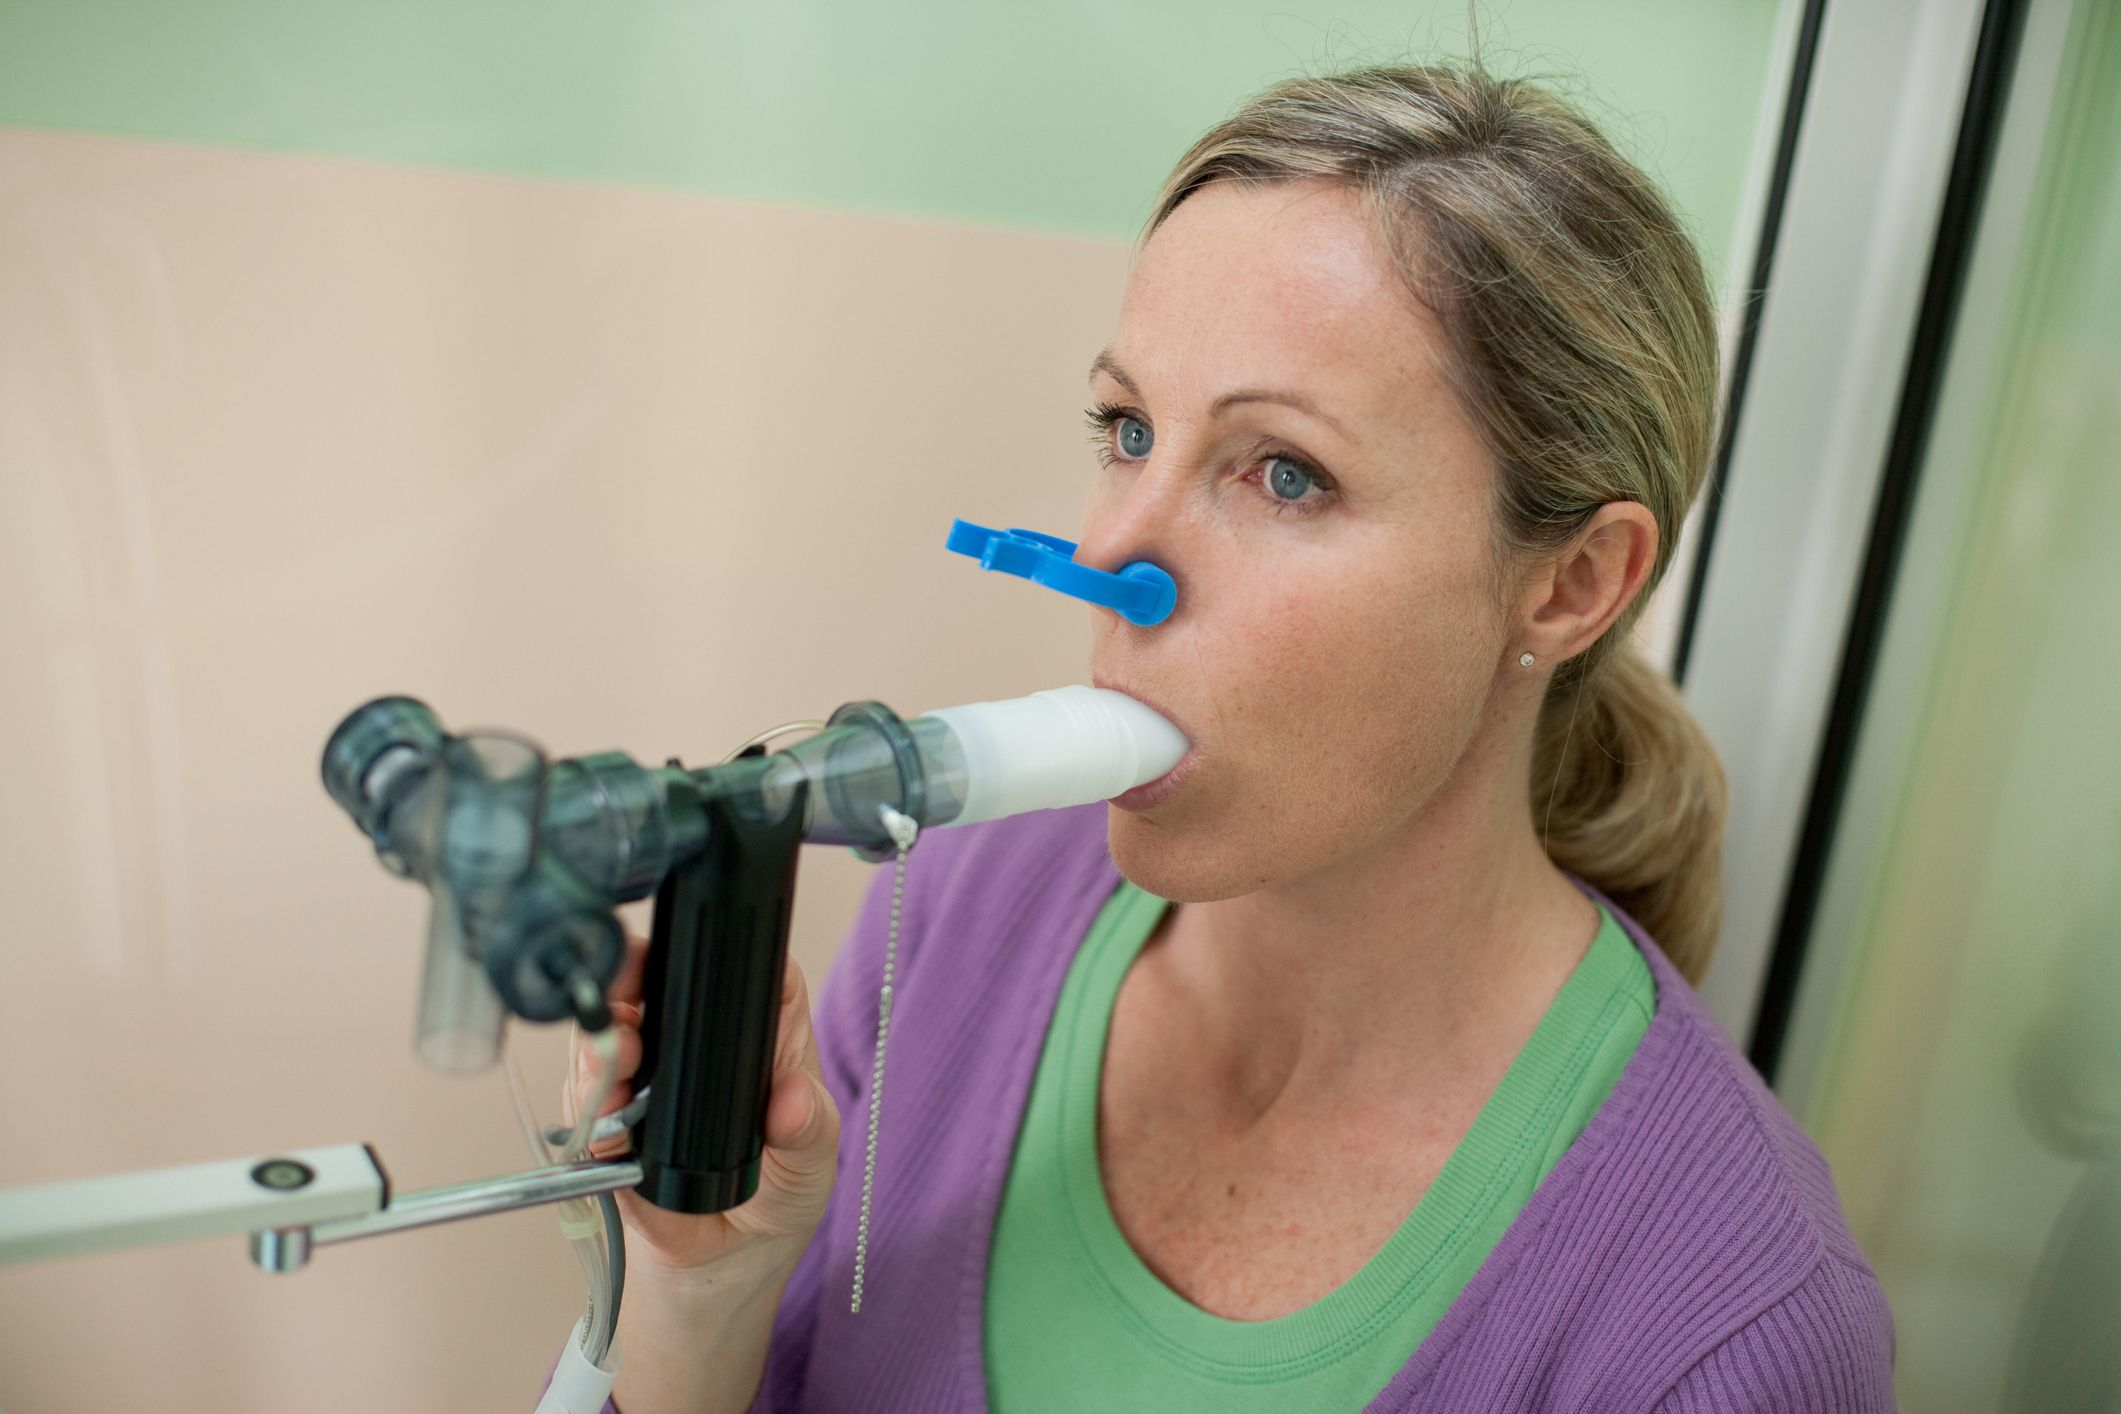 Bronchoprovocation Challenge Testing for Asthma